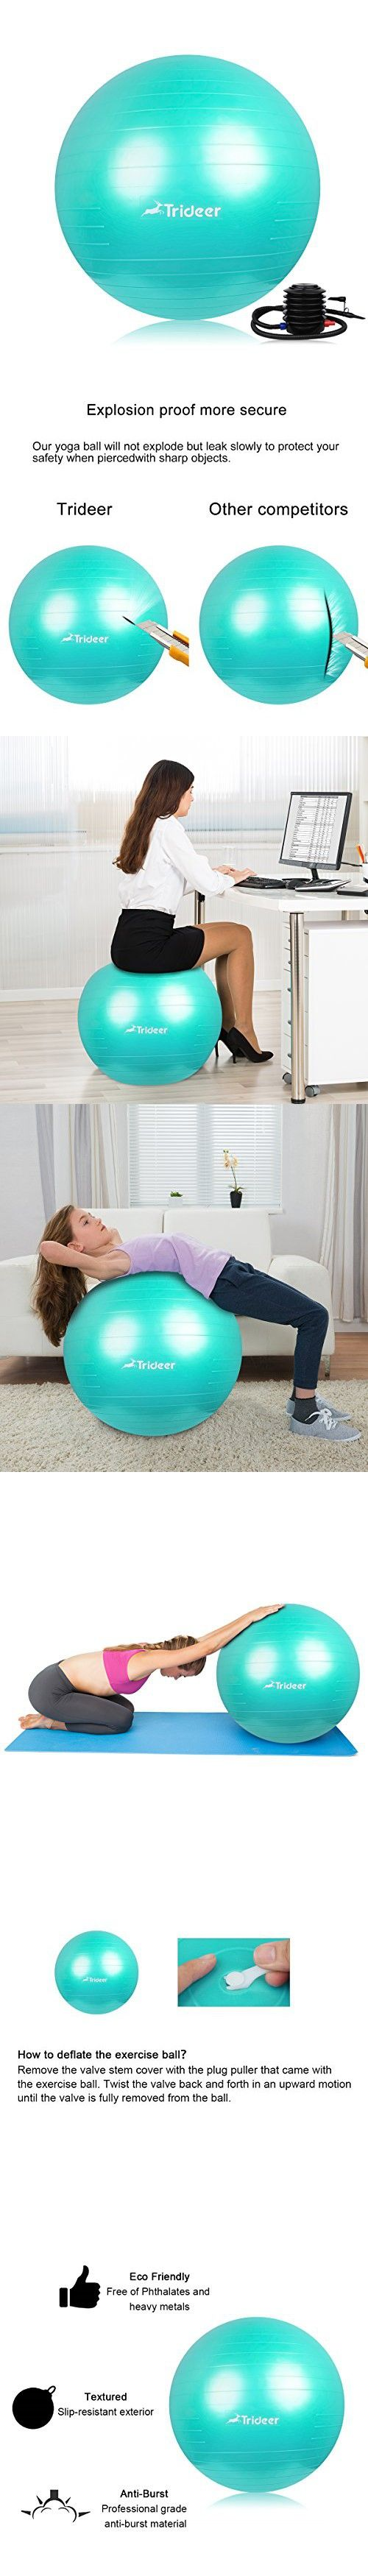 exercise and wholesale free resistant gray fitness abs for core product chair office yoga burst workouts pilaties diameter balls ball swiss pump